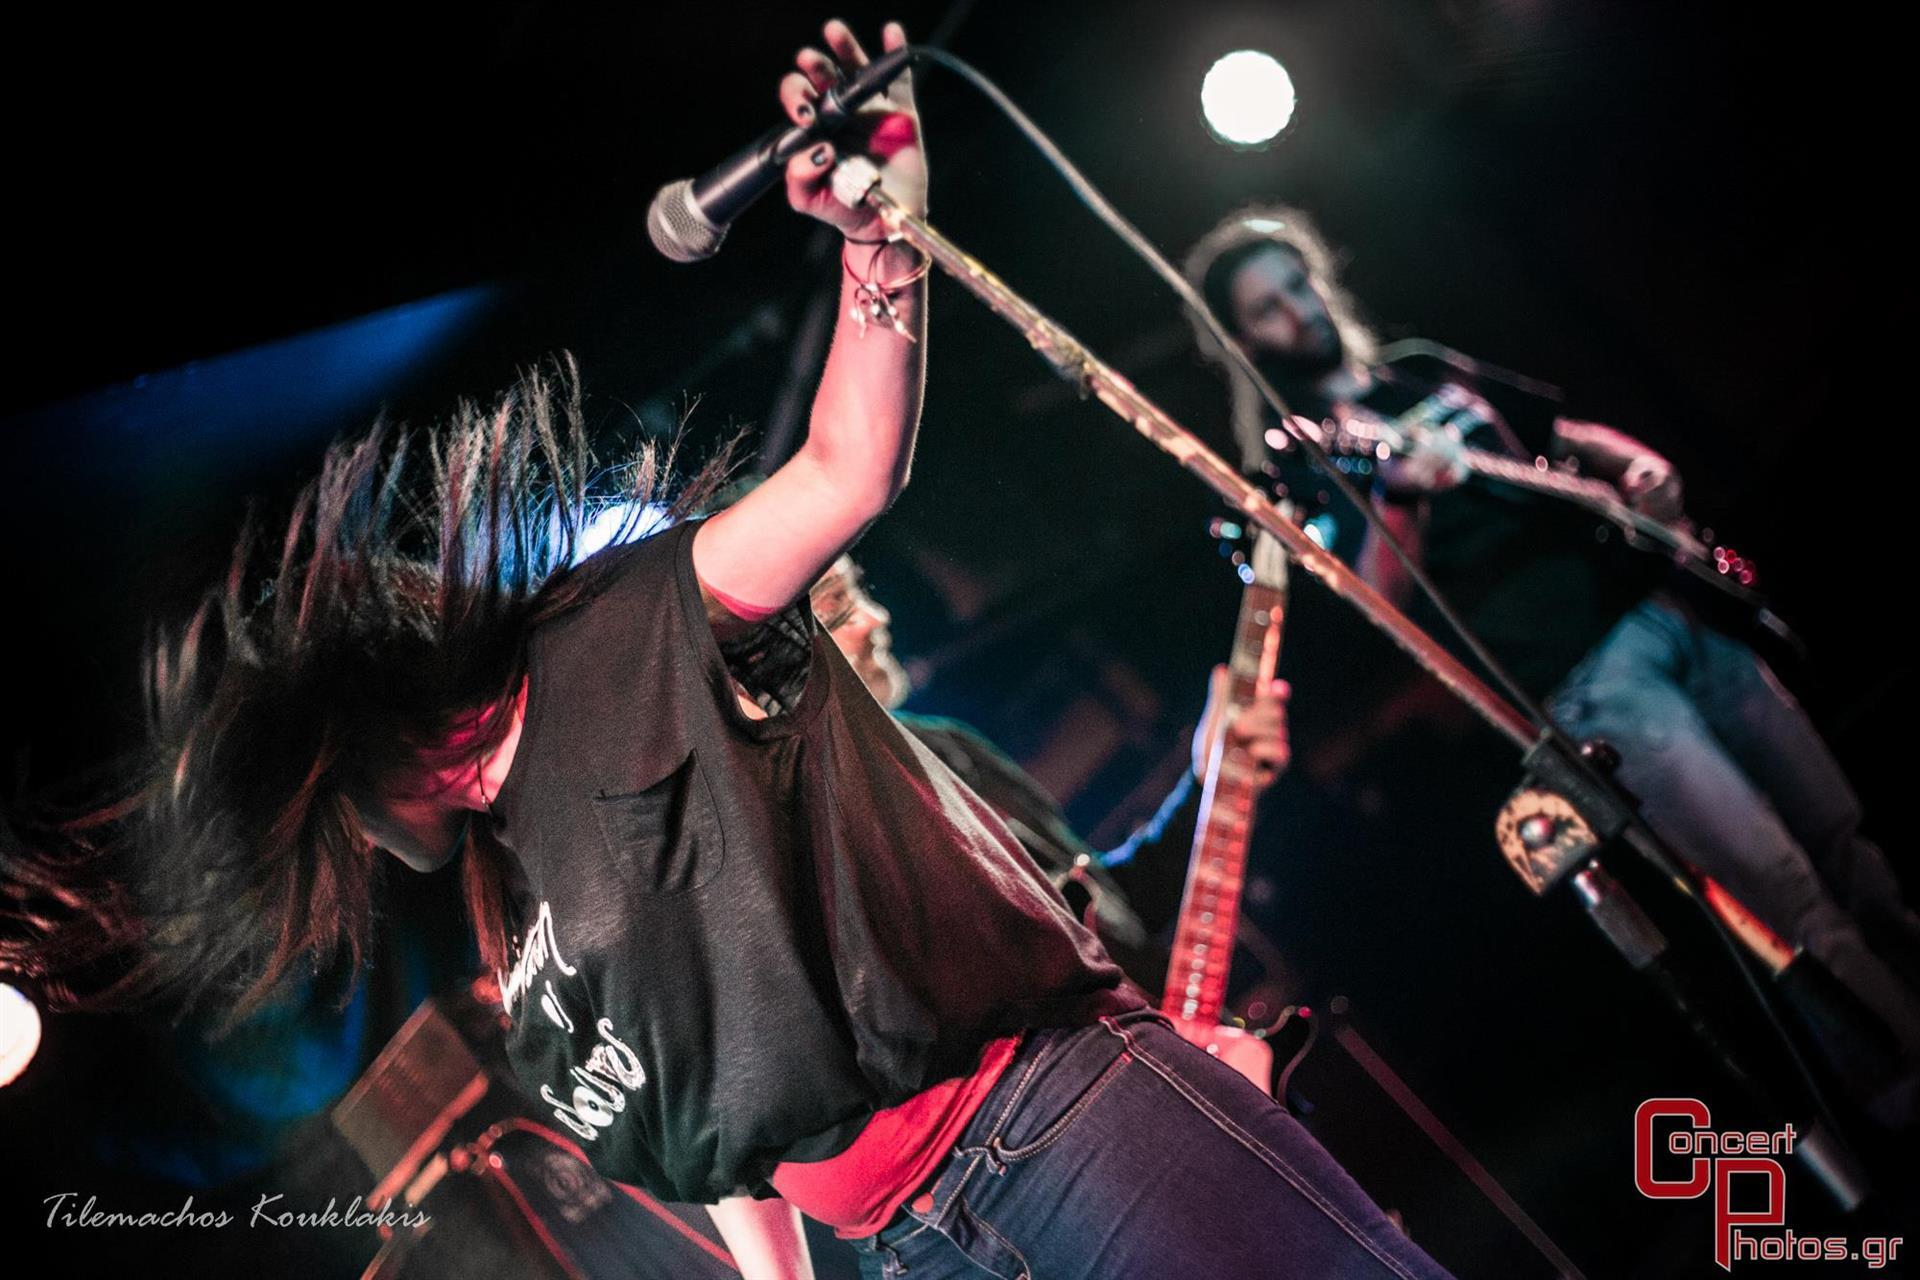 Battle Of The Bands Athens - Leg 4-test photographer:  - Battle Of The Bands-20150208-224335